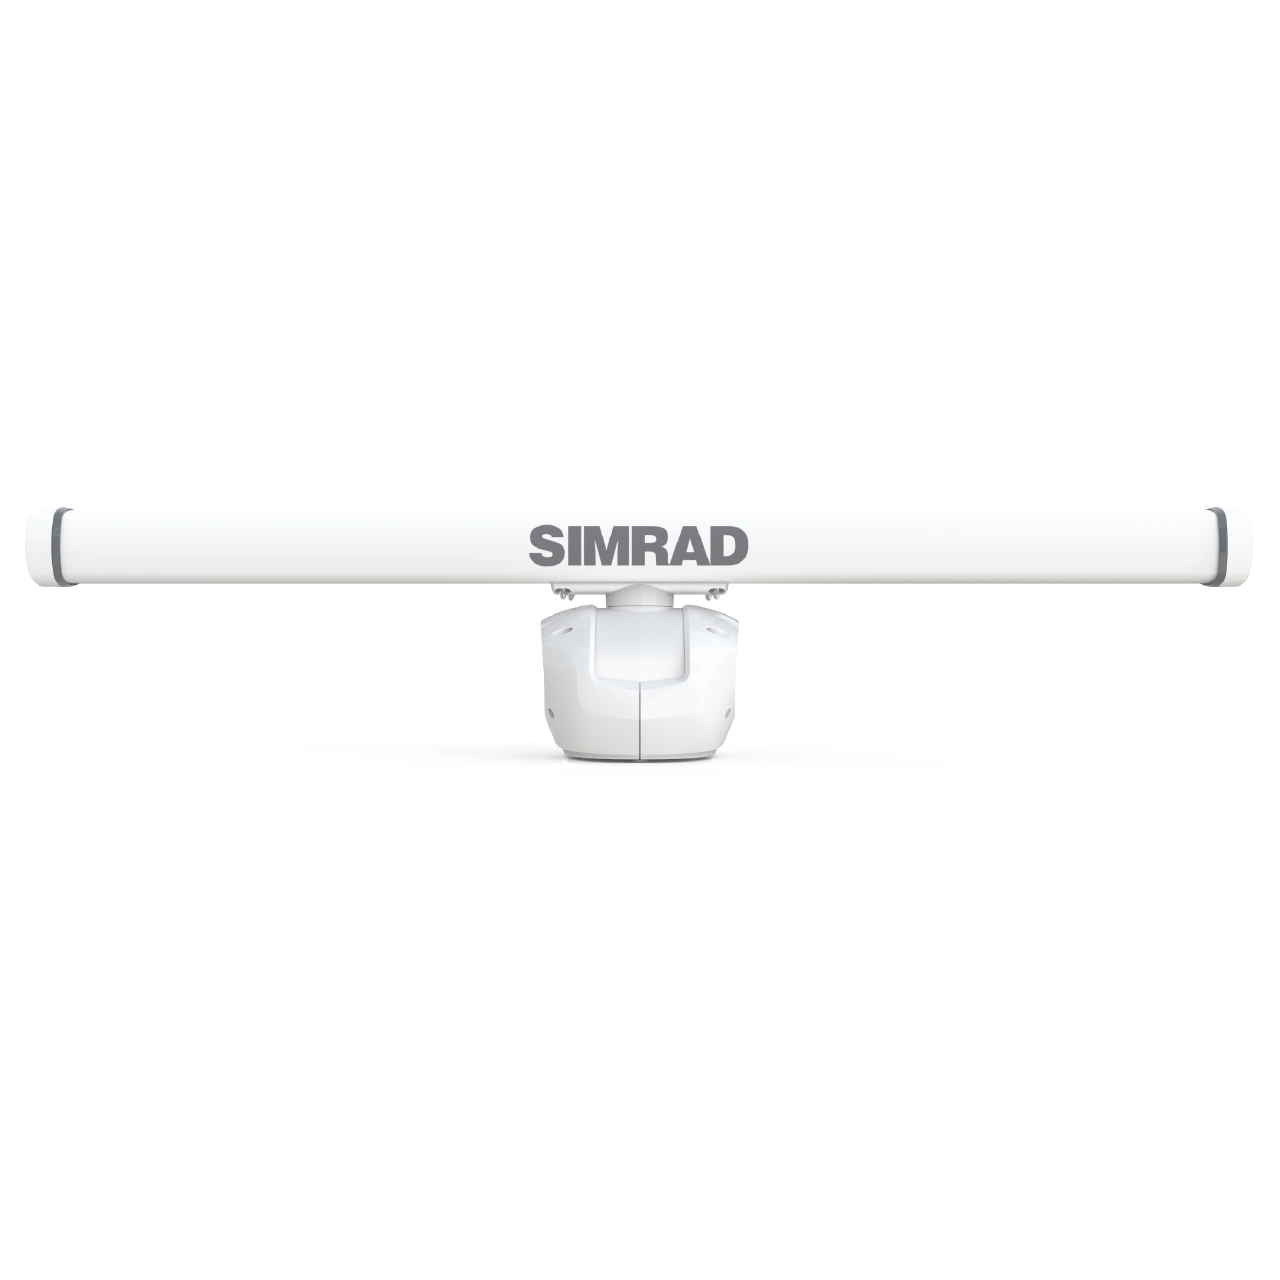 simrad halo 6 open array radar front view